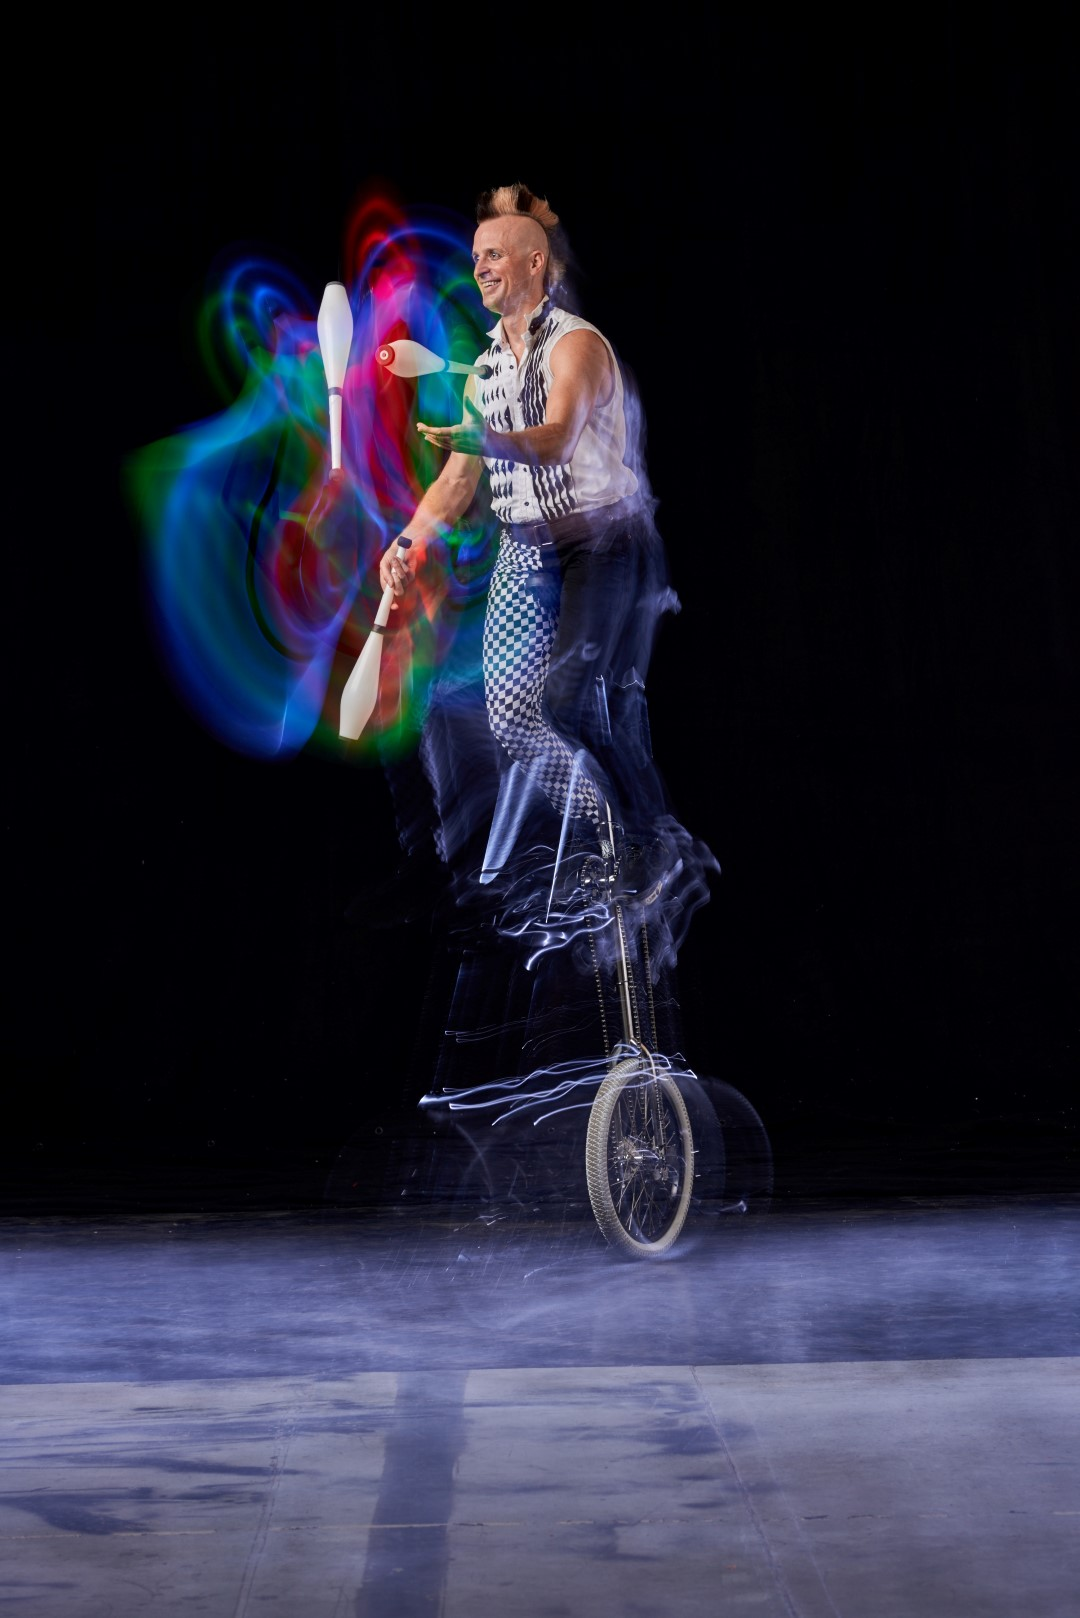 Rob Unicycling and Juggling